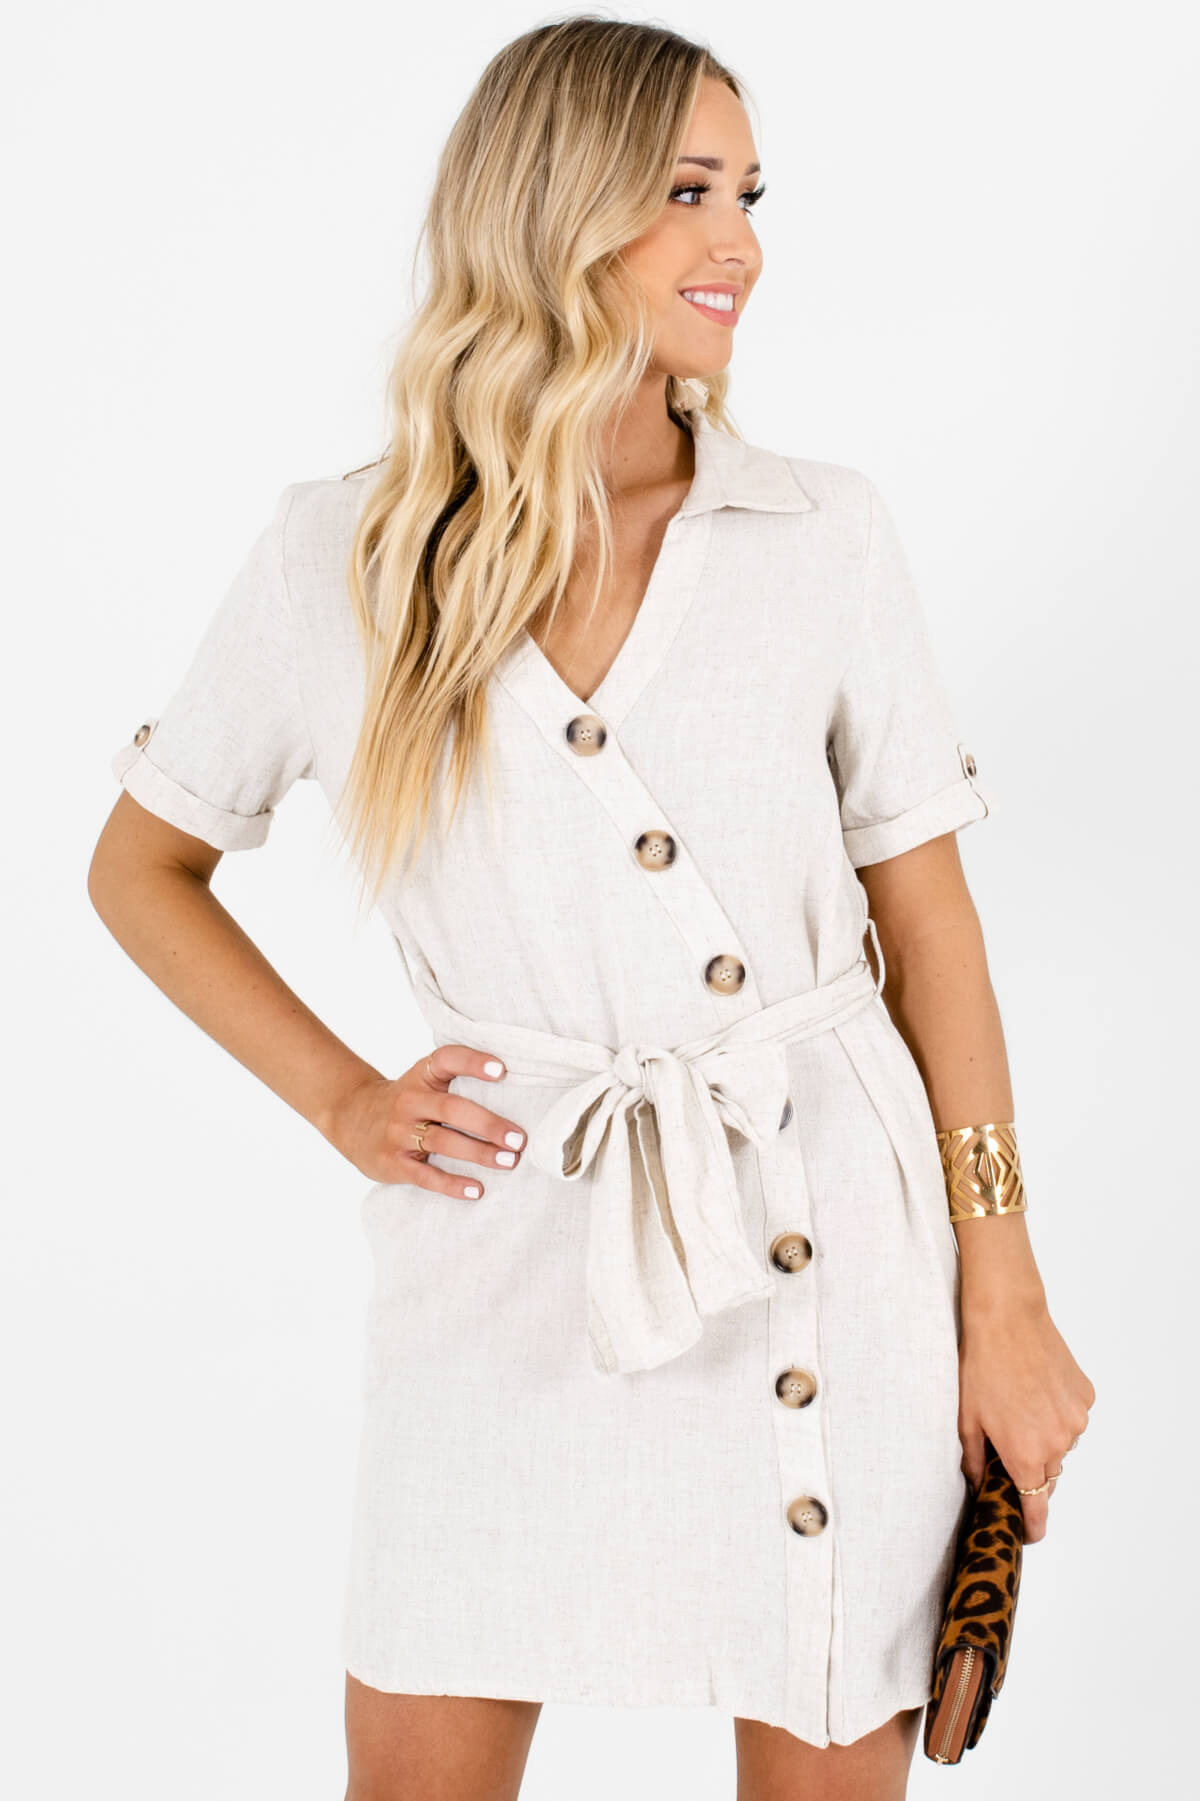 Beige Asymmetrical Button-Up Mini Dresses Affordable Online Boutique